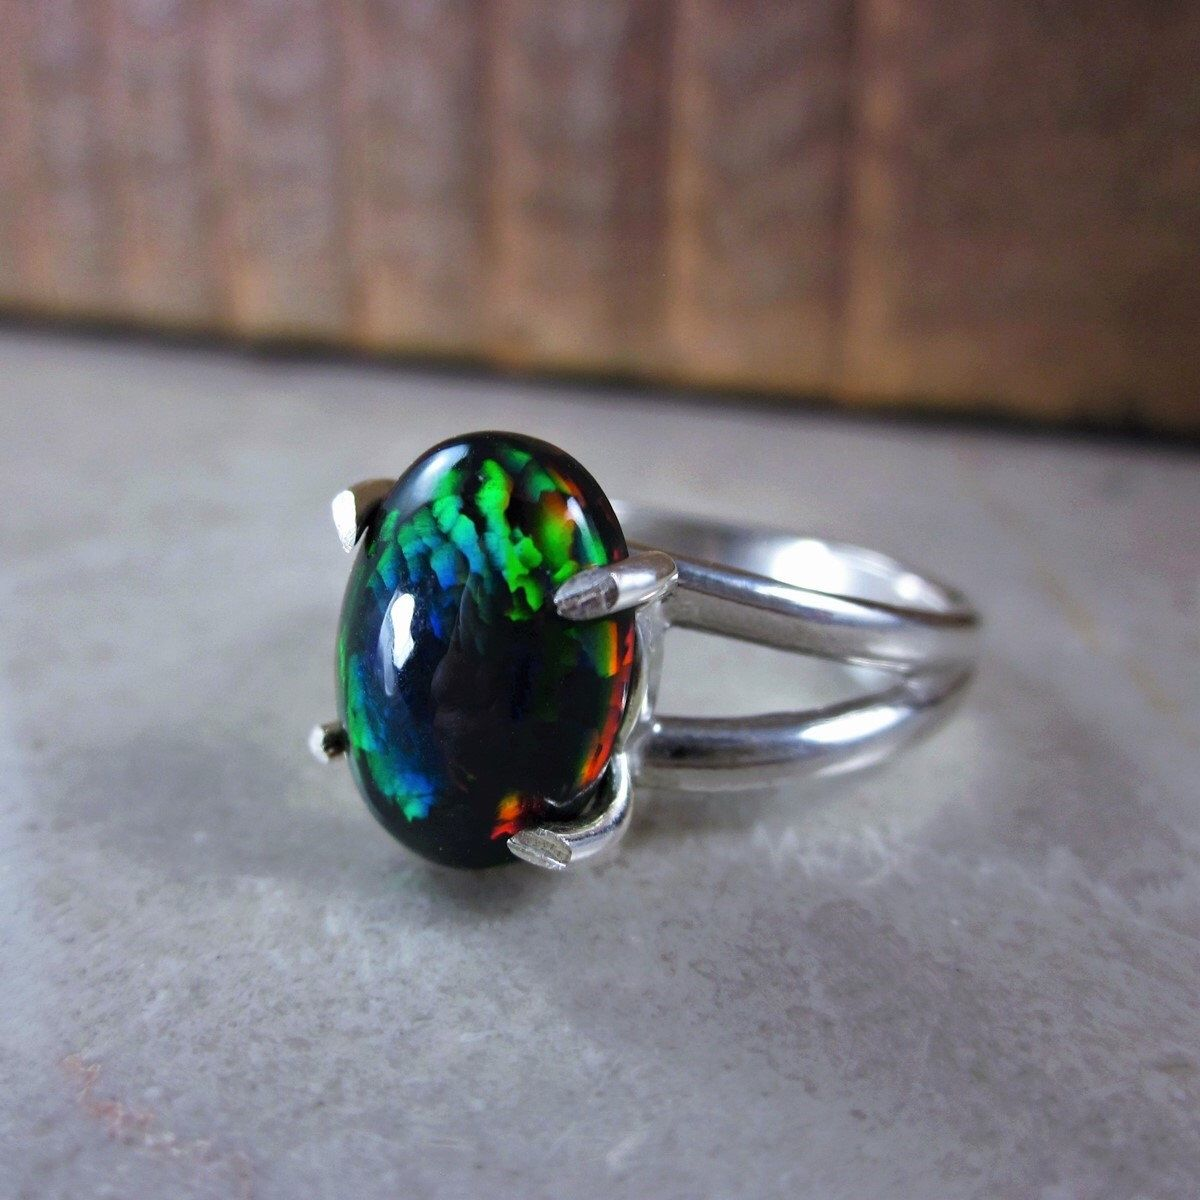 Black Opal Ring, Opal Promise Ring, Genuine Opal Ring, Opal Anniversary Ring,  Opal Solitaire Ring, Opal Wedding Ring, Snakeskin Pattern Opal